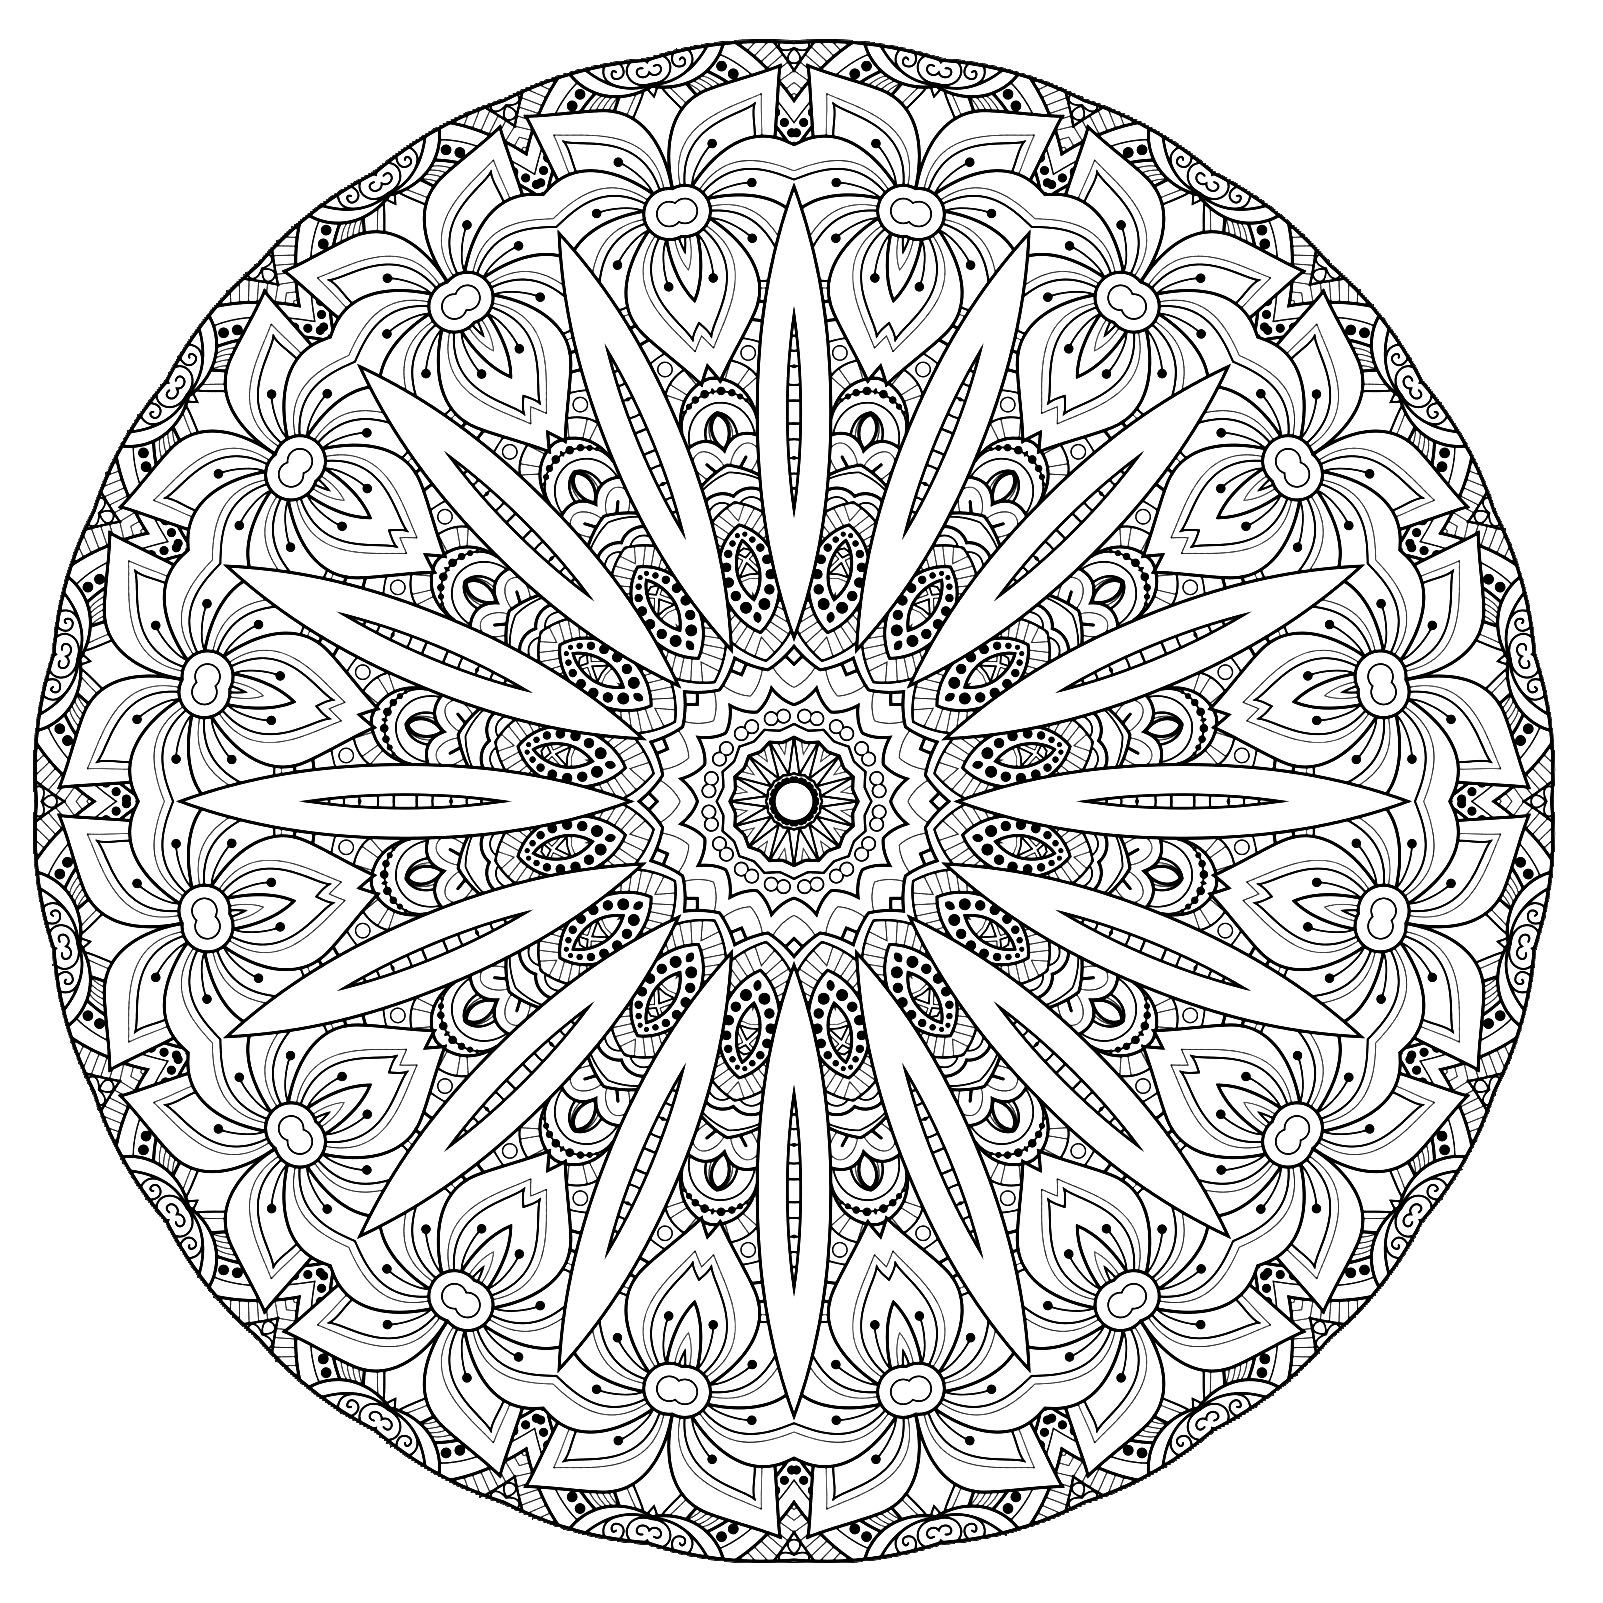 A Mandala Quite Difficult To Color Perfect If You Like To Color Small Areas And If You Like Var Mandala Coloring Pages Mandala Coloring Flower Coloring Pages